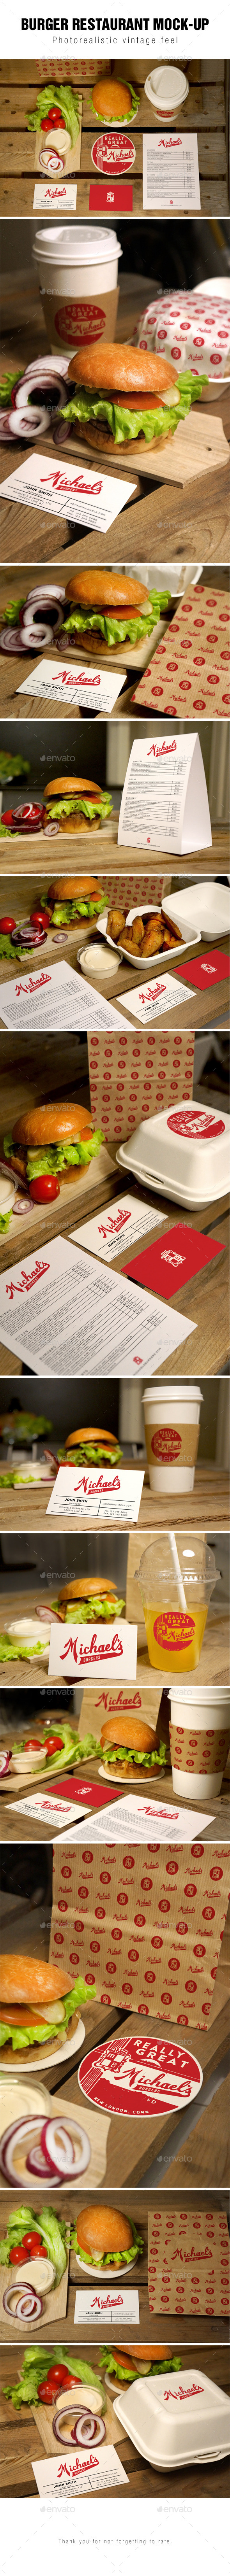 GraphicRiver Burger Restaurant Mockup 10012544